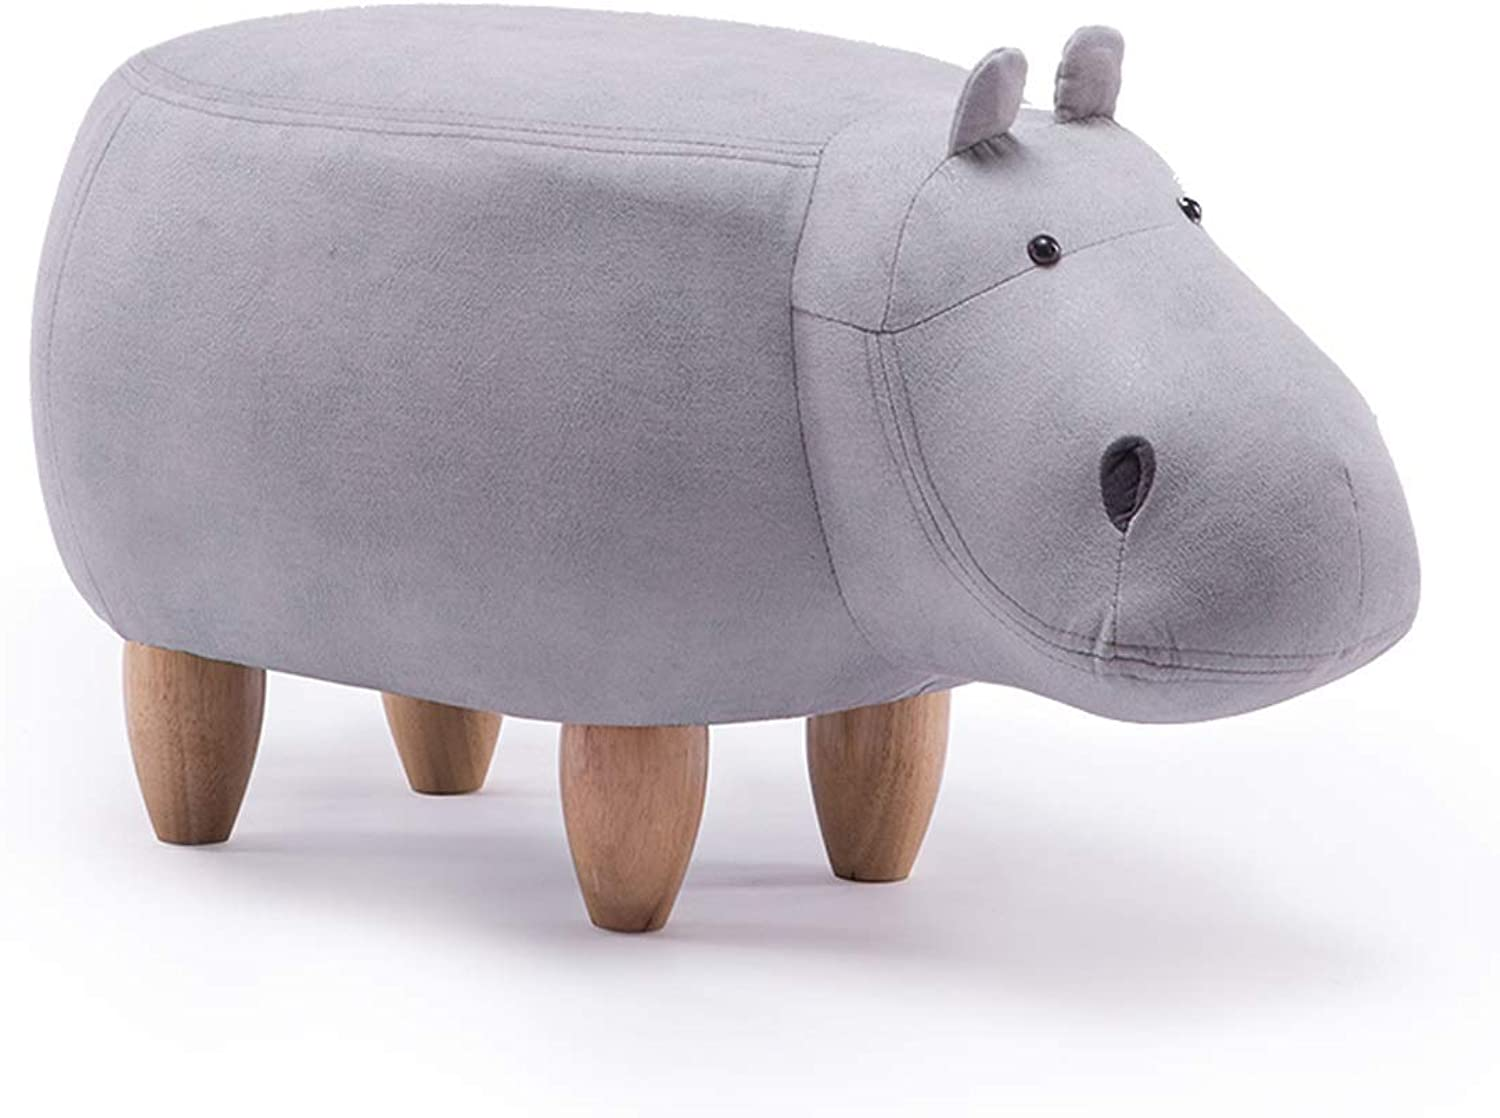 Solid Wooden Footstool Creative Hippo shoes Stool Sofa Stool Living Room Cartoon Low Stool shoes Stool 6 Carl Artbay Strong and Practical